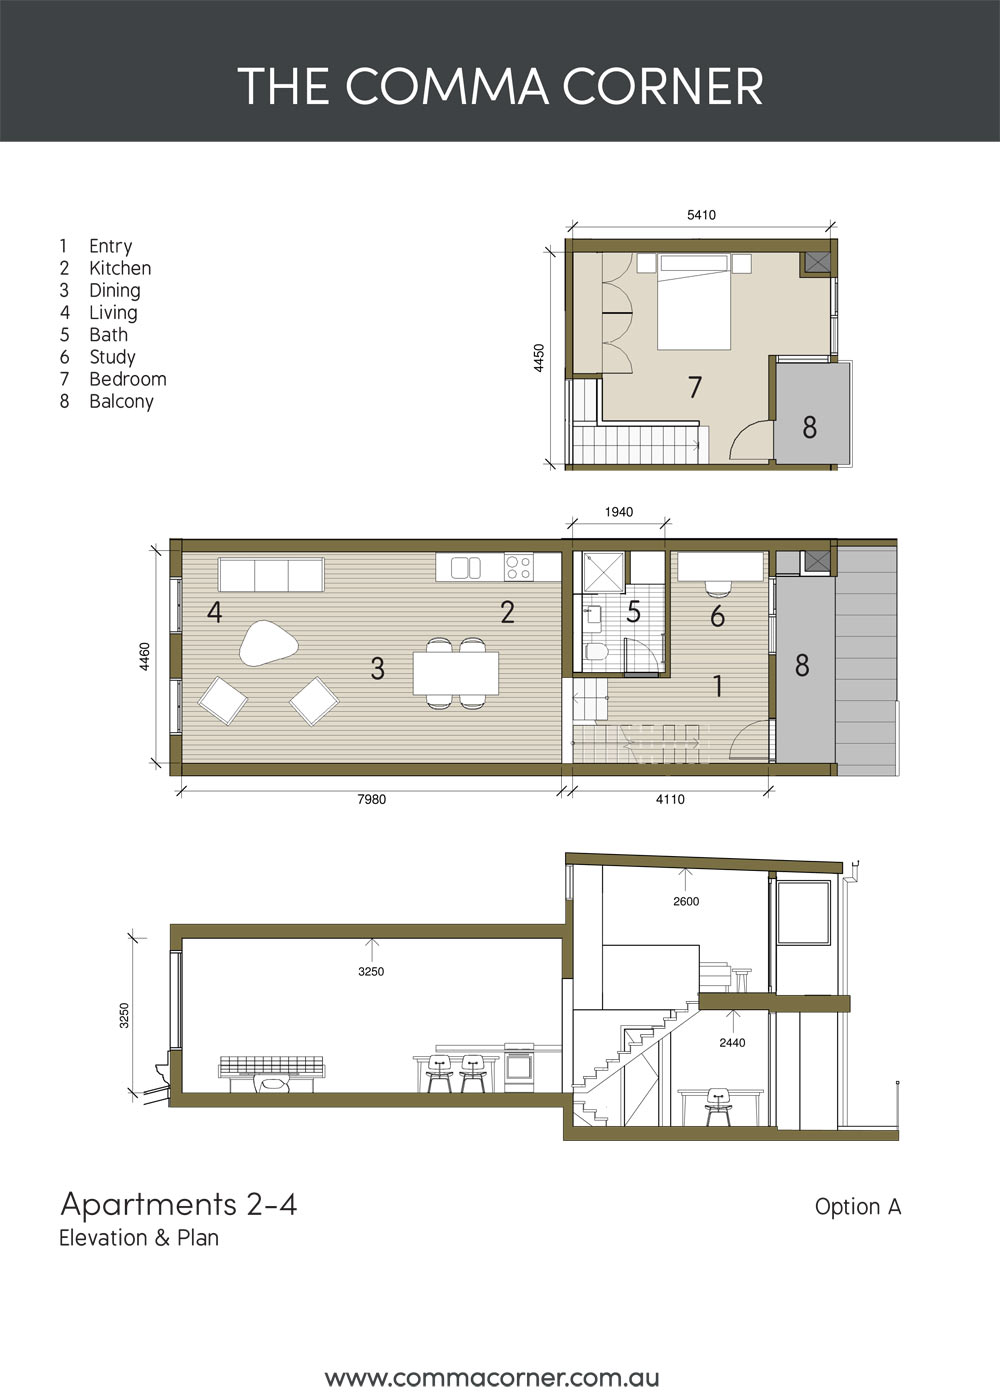 elevation and plan apartments 2 to 4